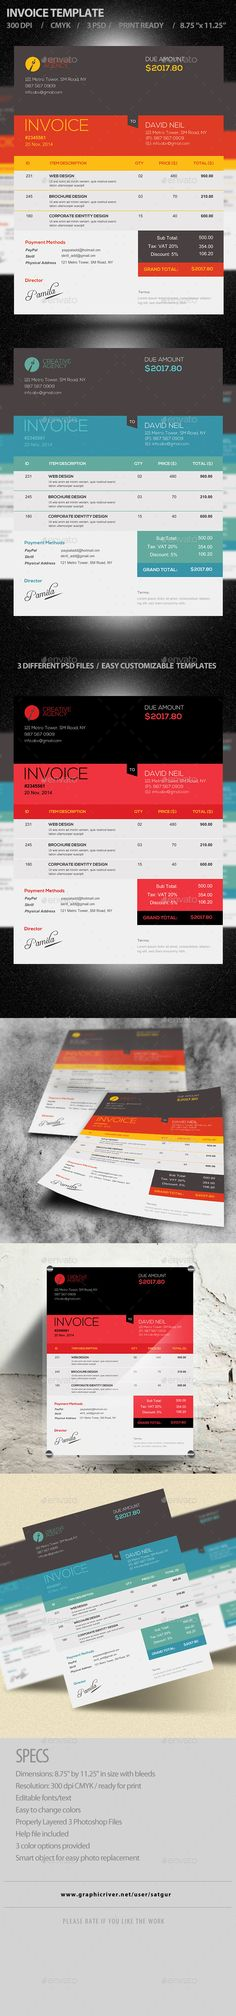 Quicken Receipts Fund Raising Registration Form Template Us Letter  Raising  Due Upon Receipt with What Is An Itemized Receipt Excel Invoice Template Psd How To Receive Invoice On Paypal Word